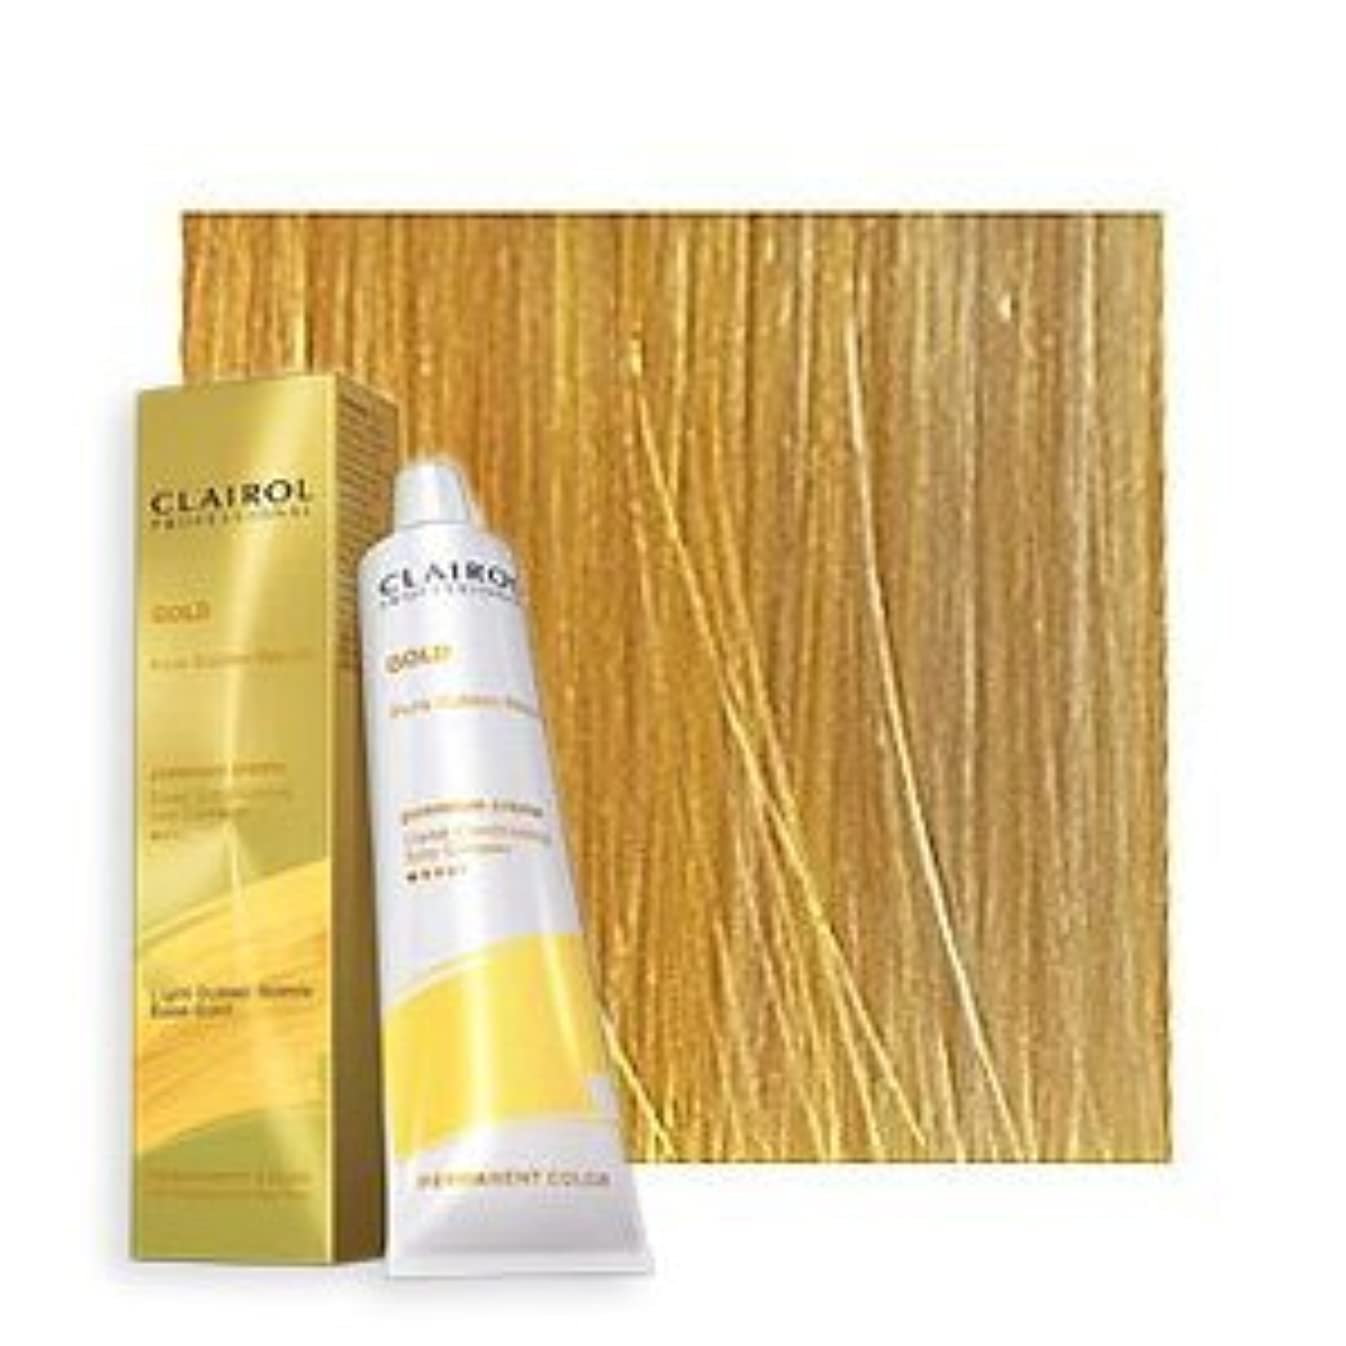 控える寄稿者必要とするClairol Professional - SOY4PLEX - Lightest Golden Blonde 10G - 2 oz / 57 g